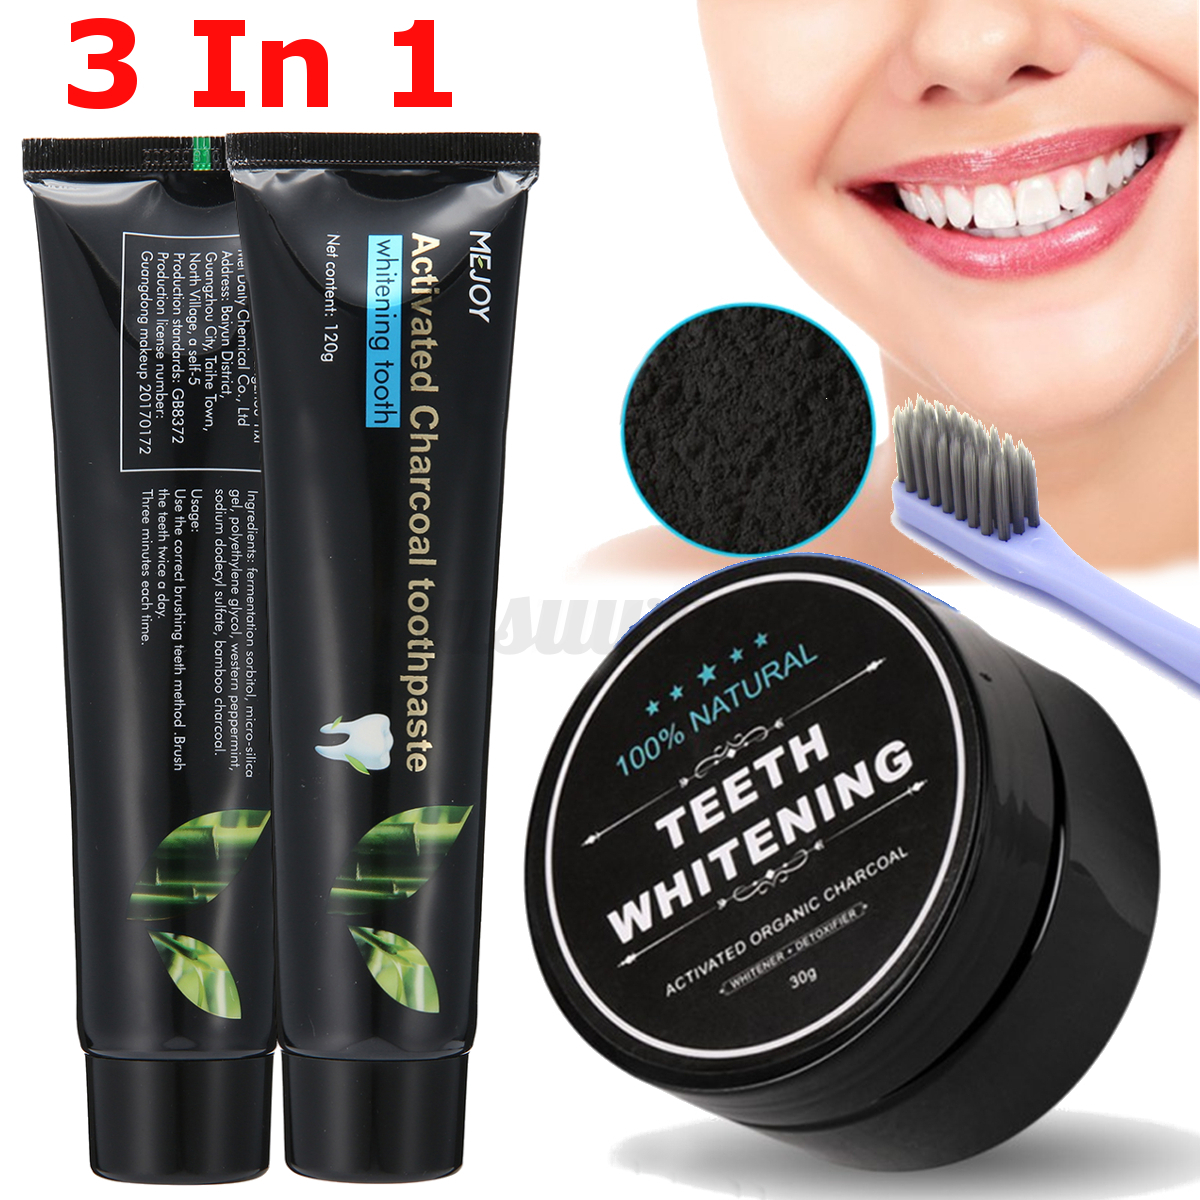 100 naturel bambou charbon actif poudre dentifrice blanchiment des dents brosse ebay. Black Bedroom Furniture Sets. Home Design Ideas